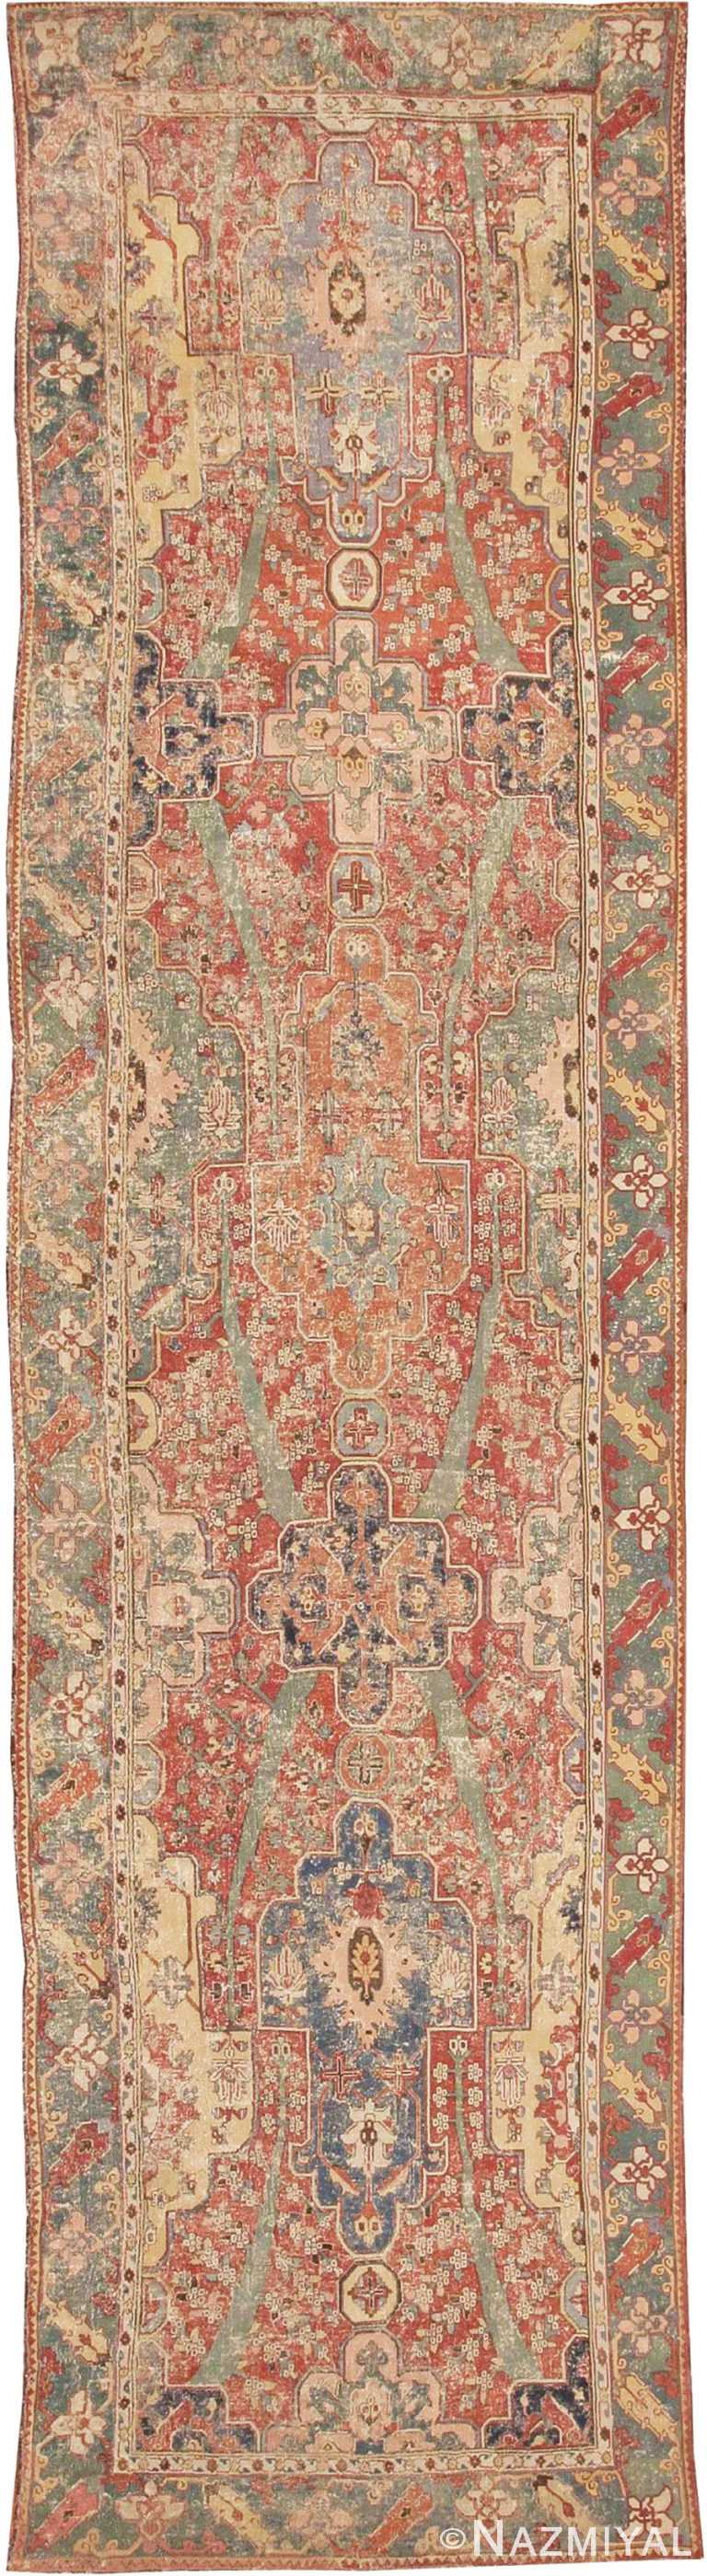 Rare Antique 17th Century Gallery Size Khorassan Persian Rug #3289 by Nazmiyal Antique Rugs